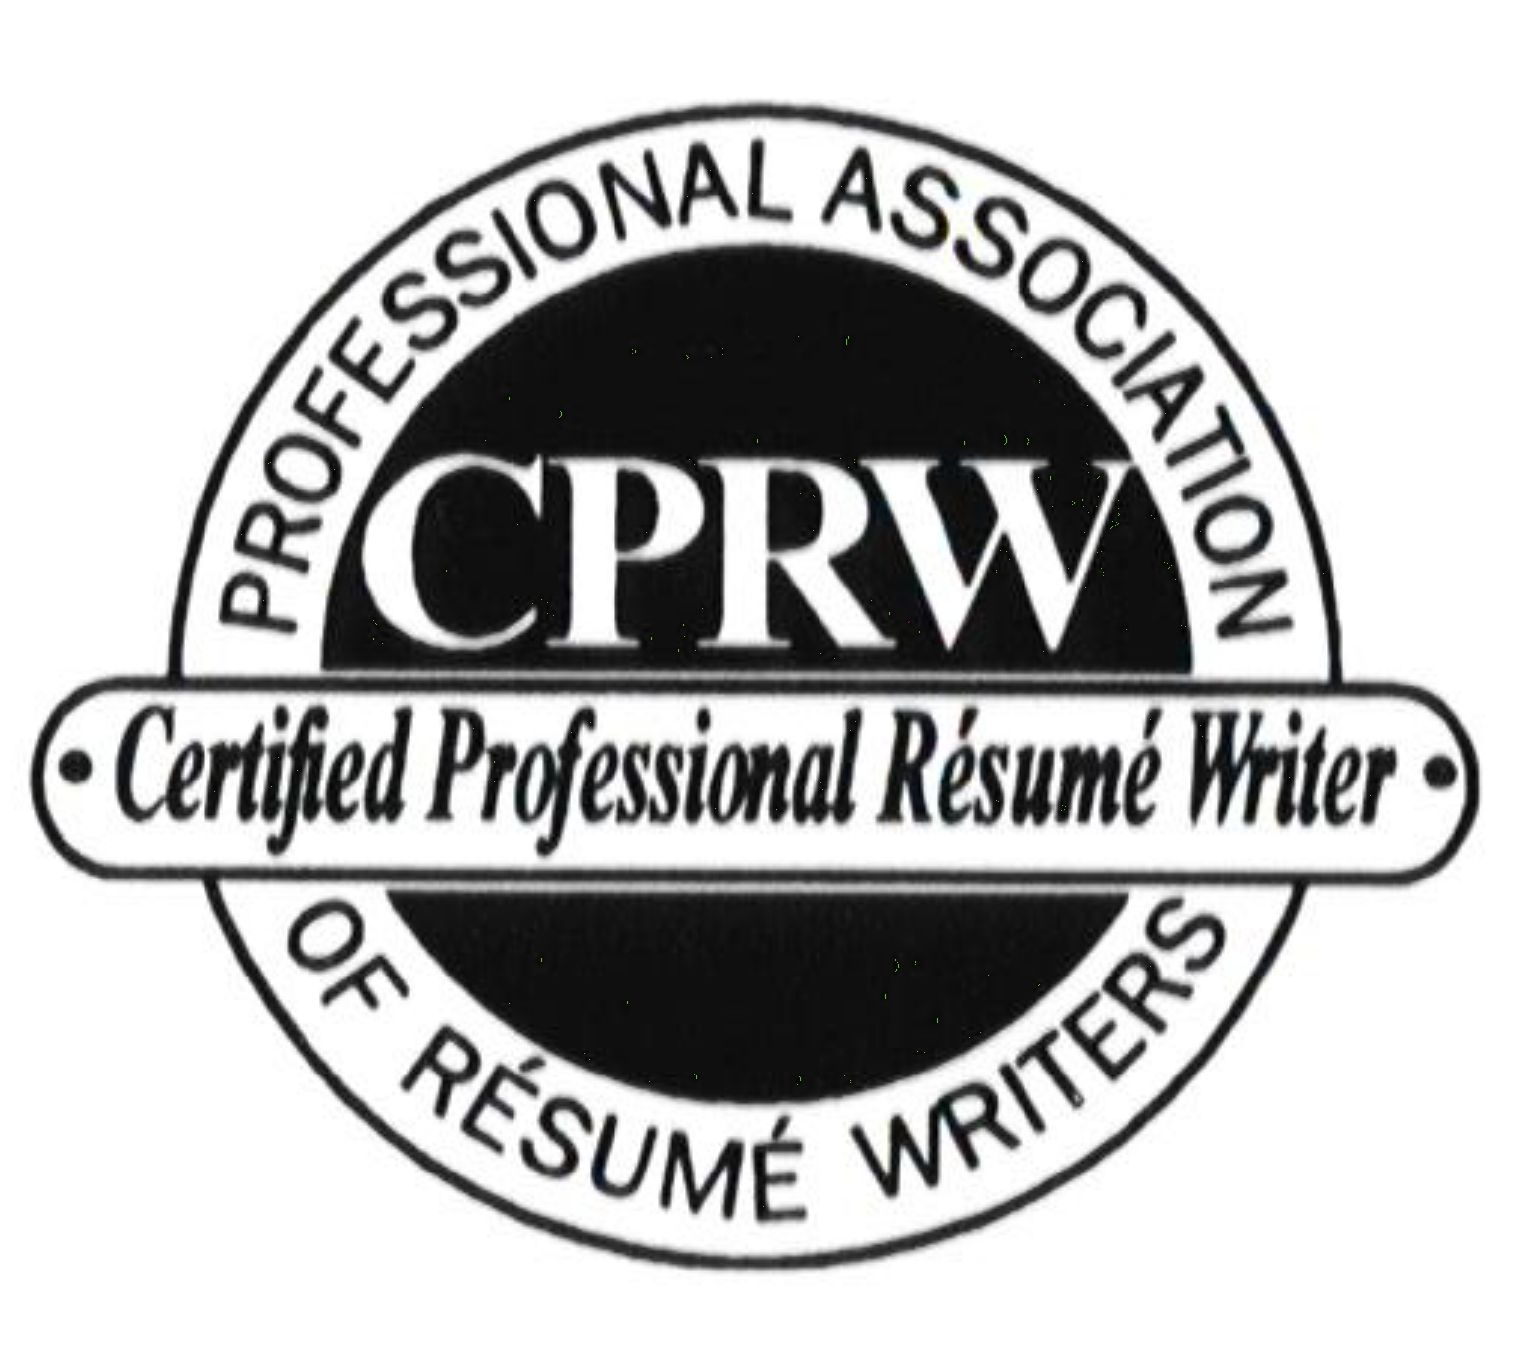 Professional Resume Writing Certified Professional Resume Writer  Calgary Alberta  Awards